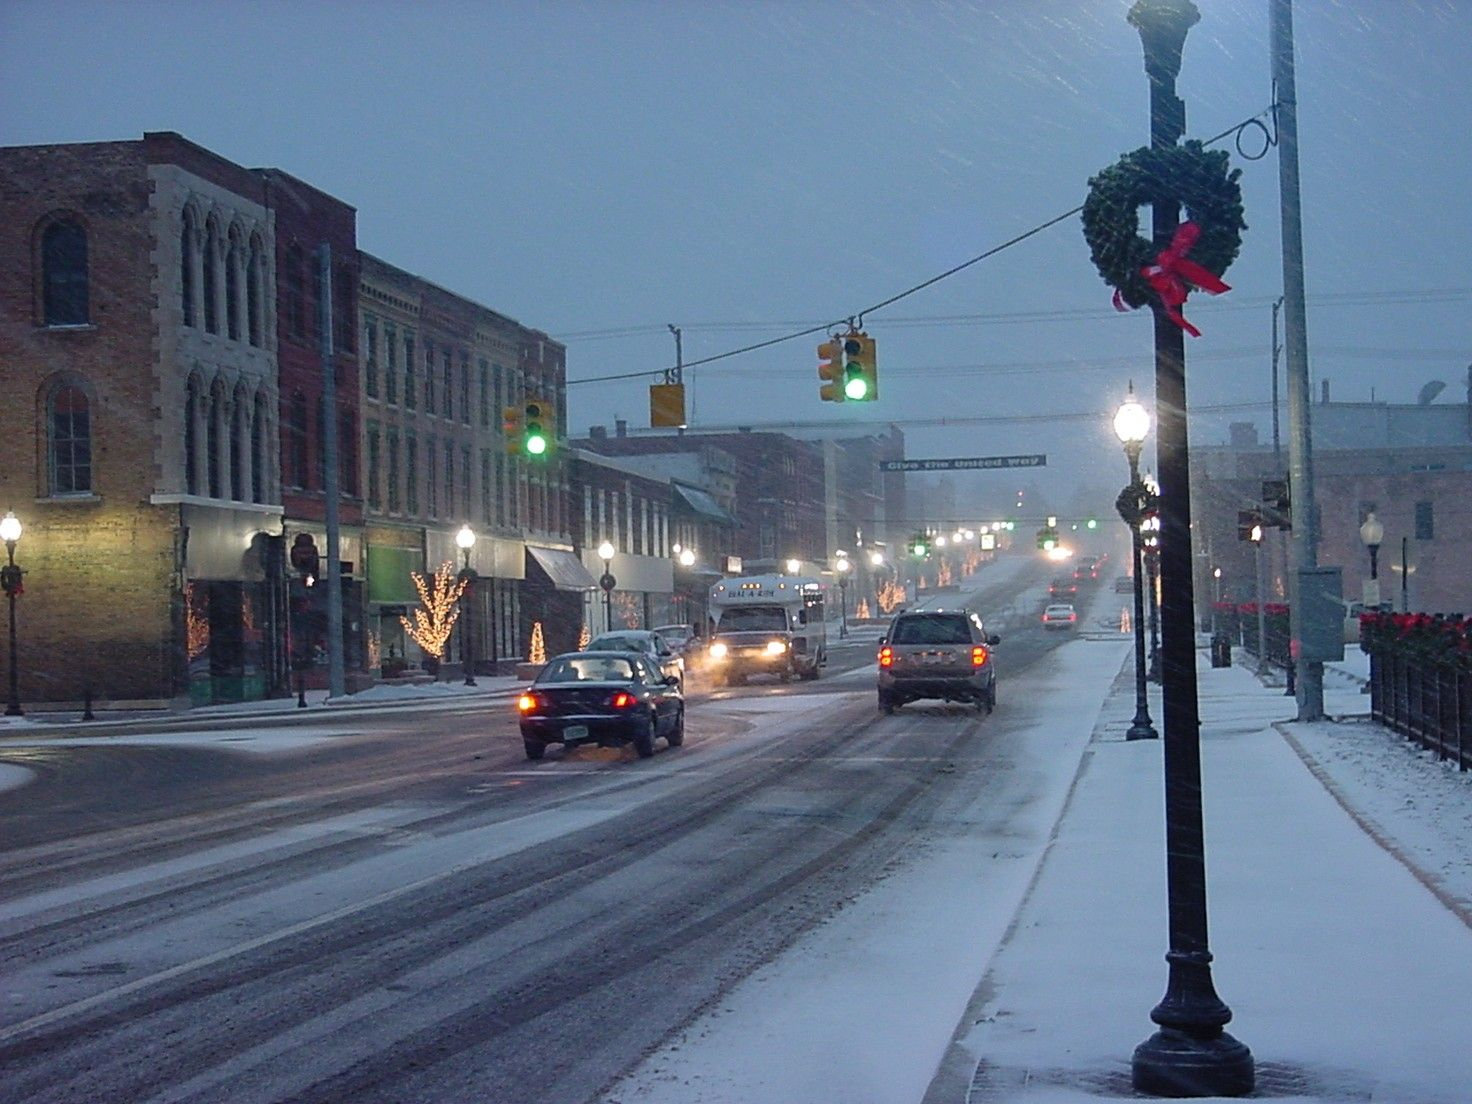 Downtown Niles in snow... remembering watching from ballet class as the snow fell <3